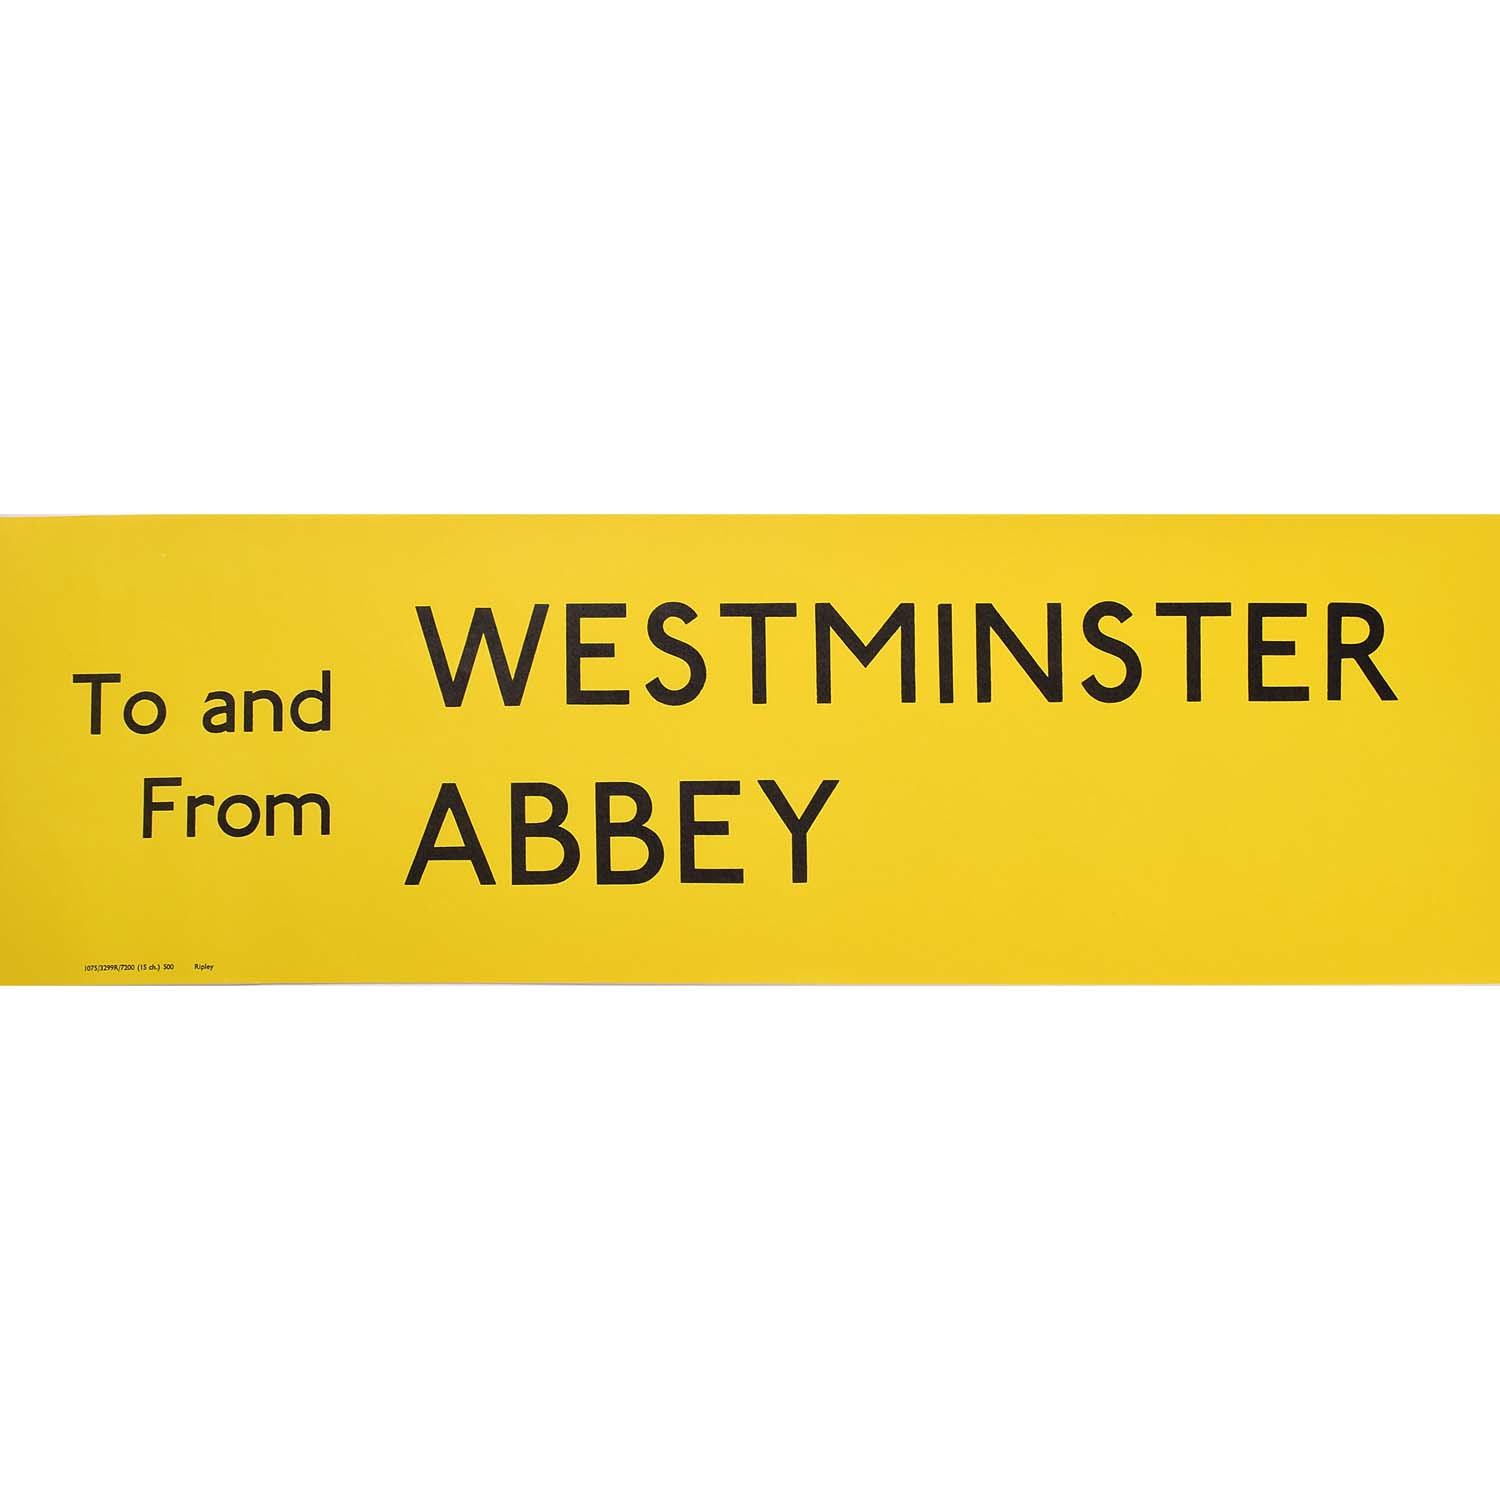 Westminster Abbey Routemaster Bus Slipboard Poster c1970